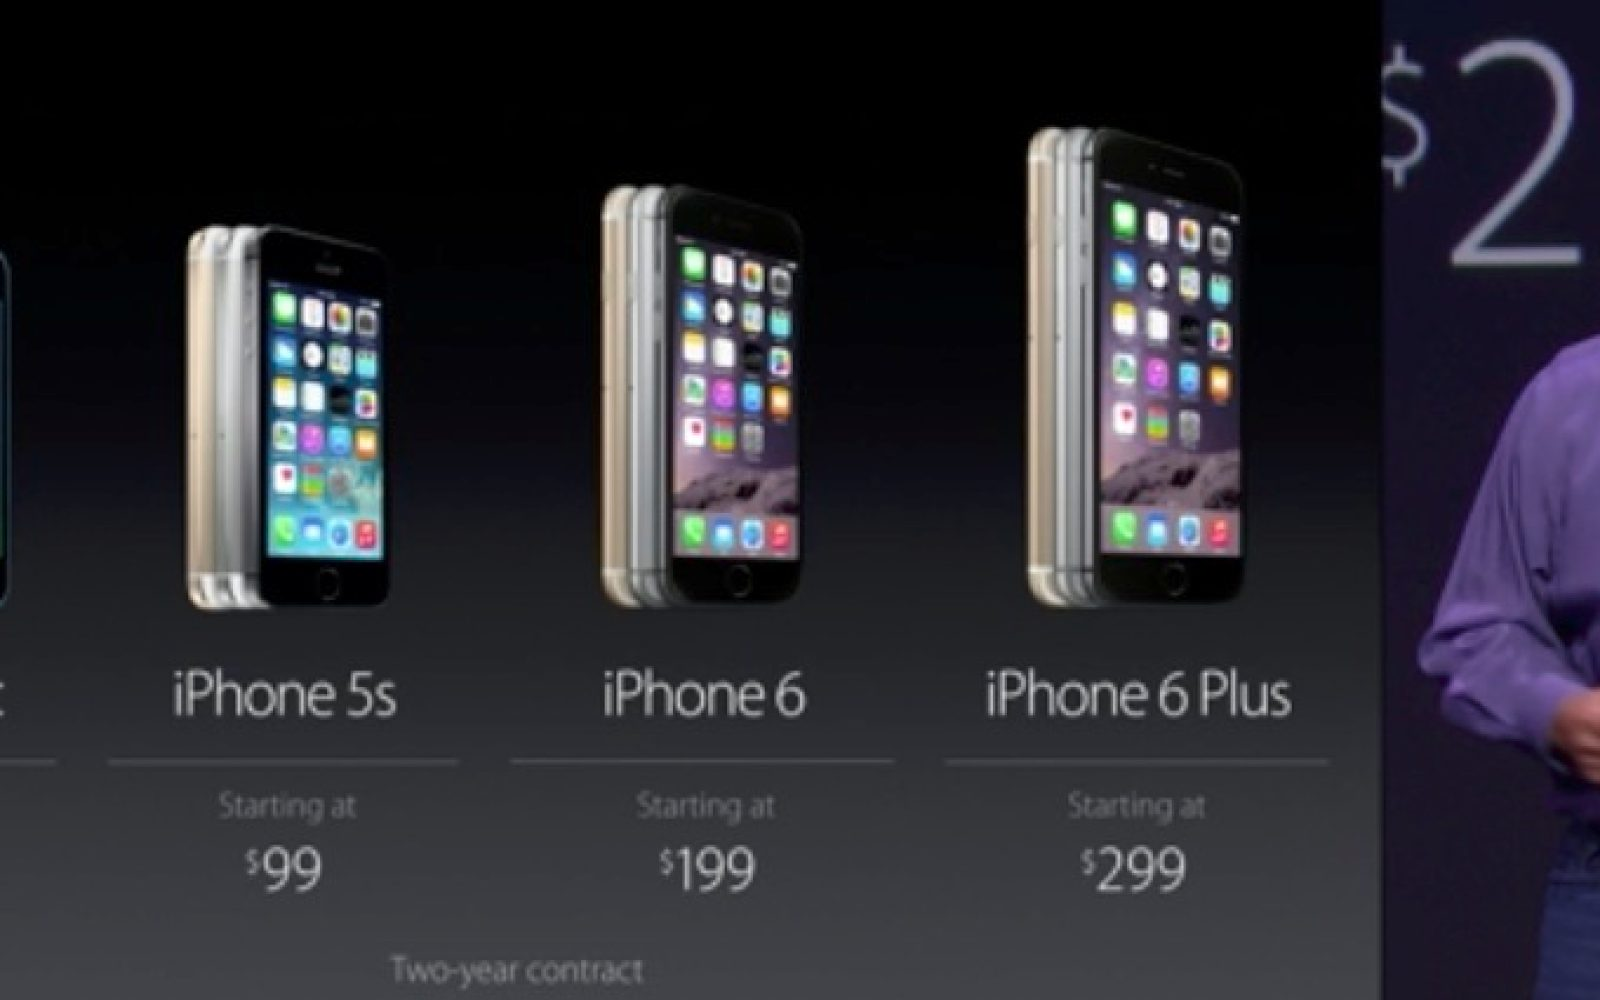 Iphone 6 Starts At 199 Plus 299 Preorder Sept 12 Apple 6plus 16 Ships 19